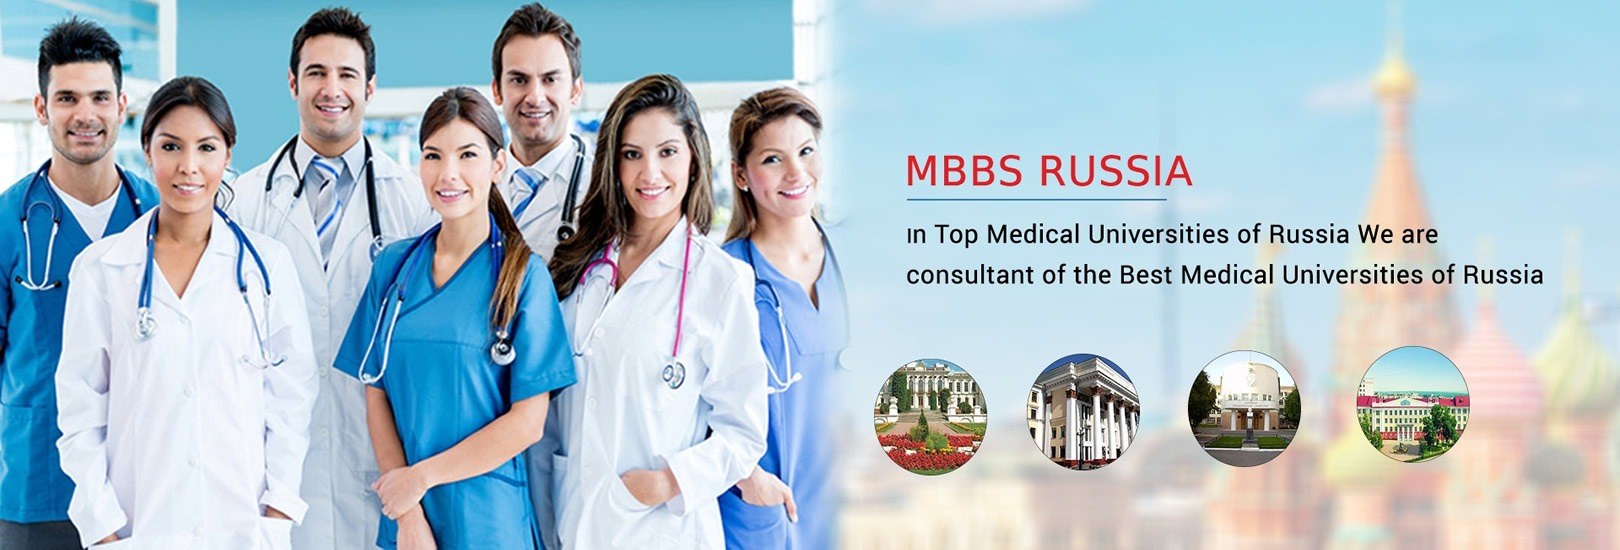 Study MBBS in Philippines,MBBS in Russia